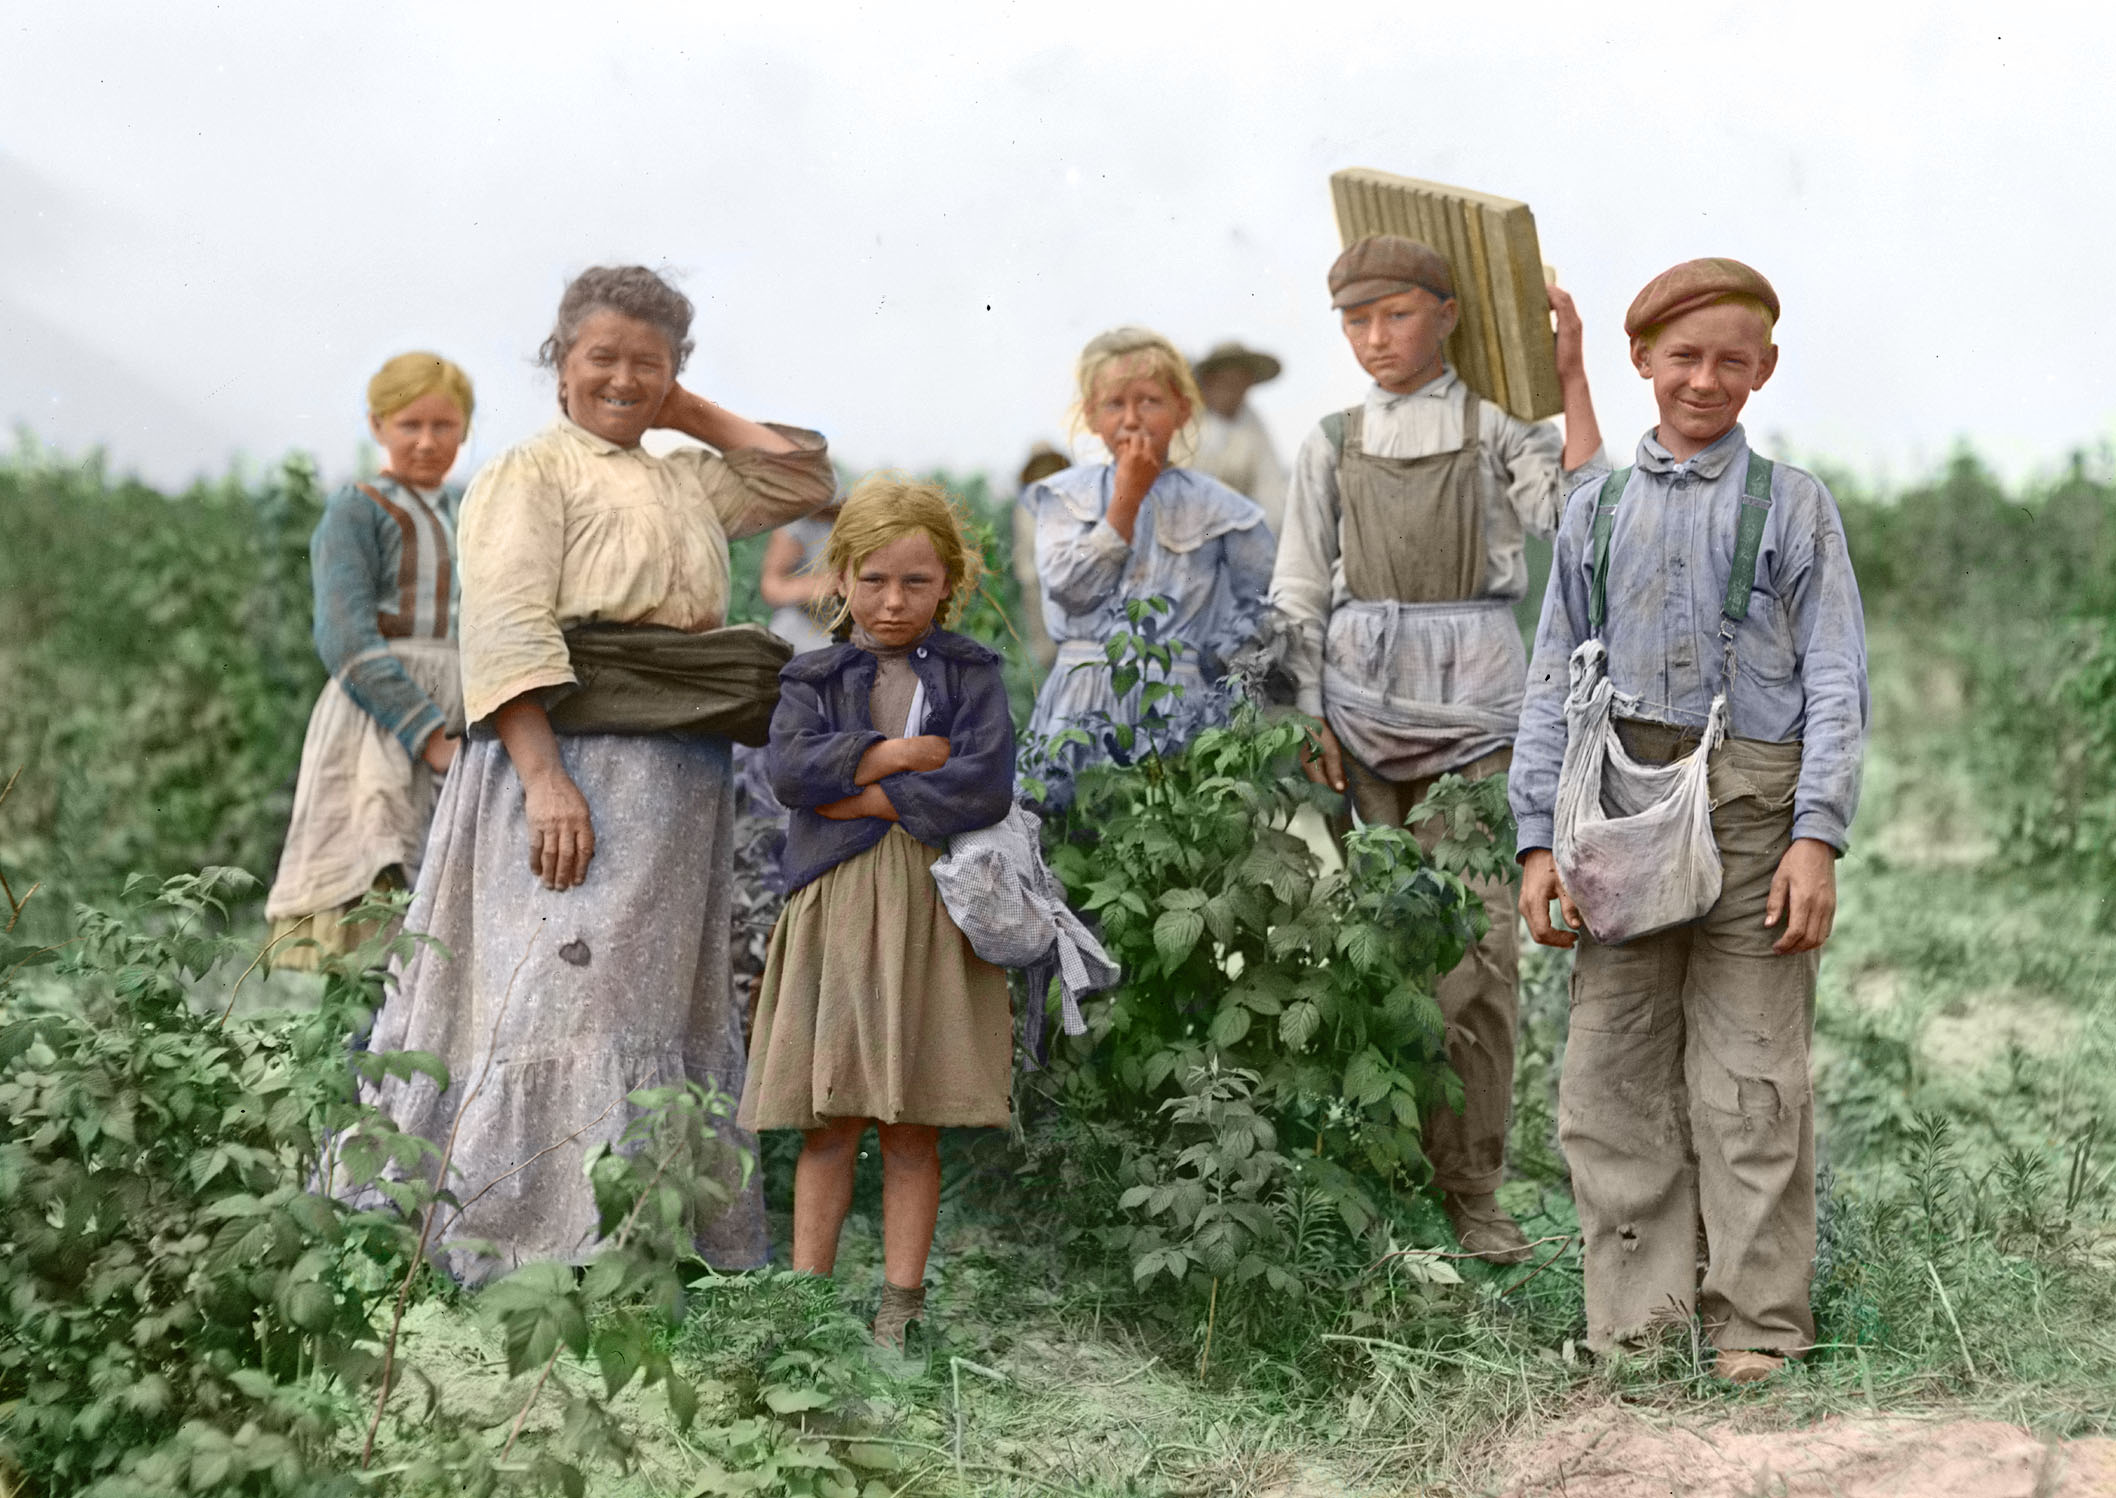 https://upload.wikimedia.org/wikipedia/commons/c/c2/Polish_berry_pickers_color.jpg